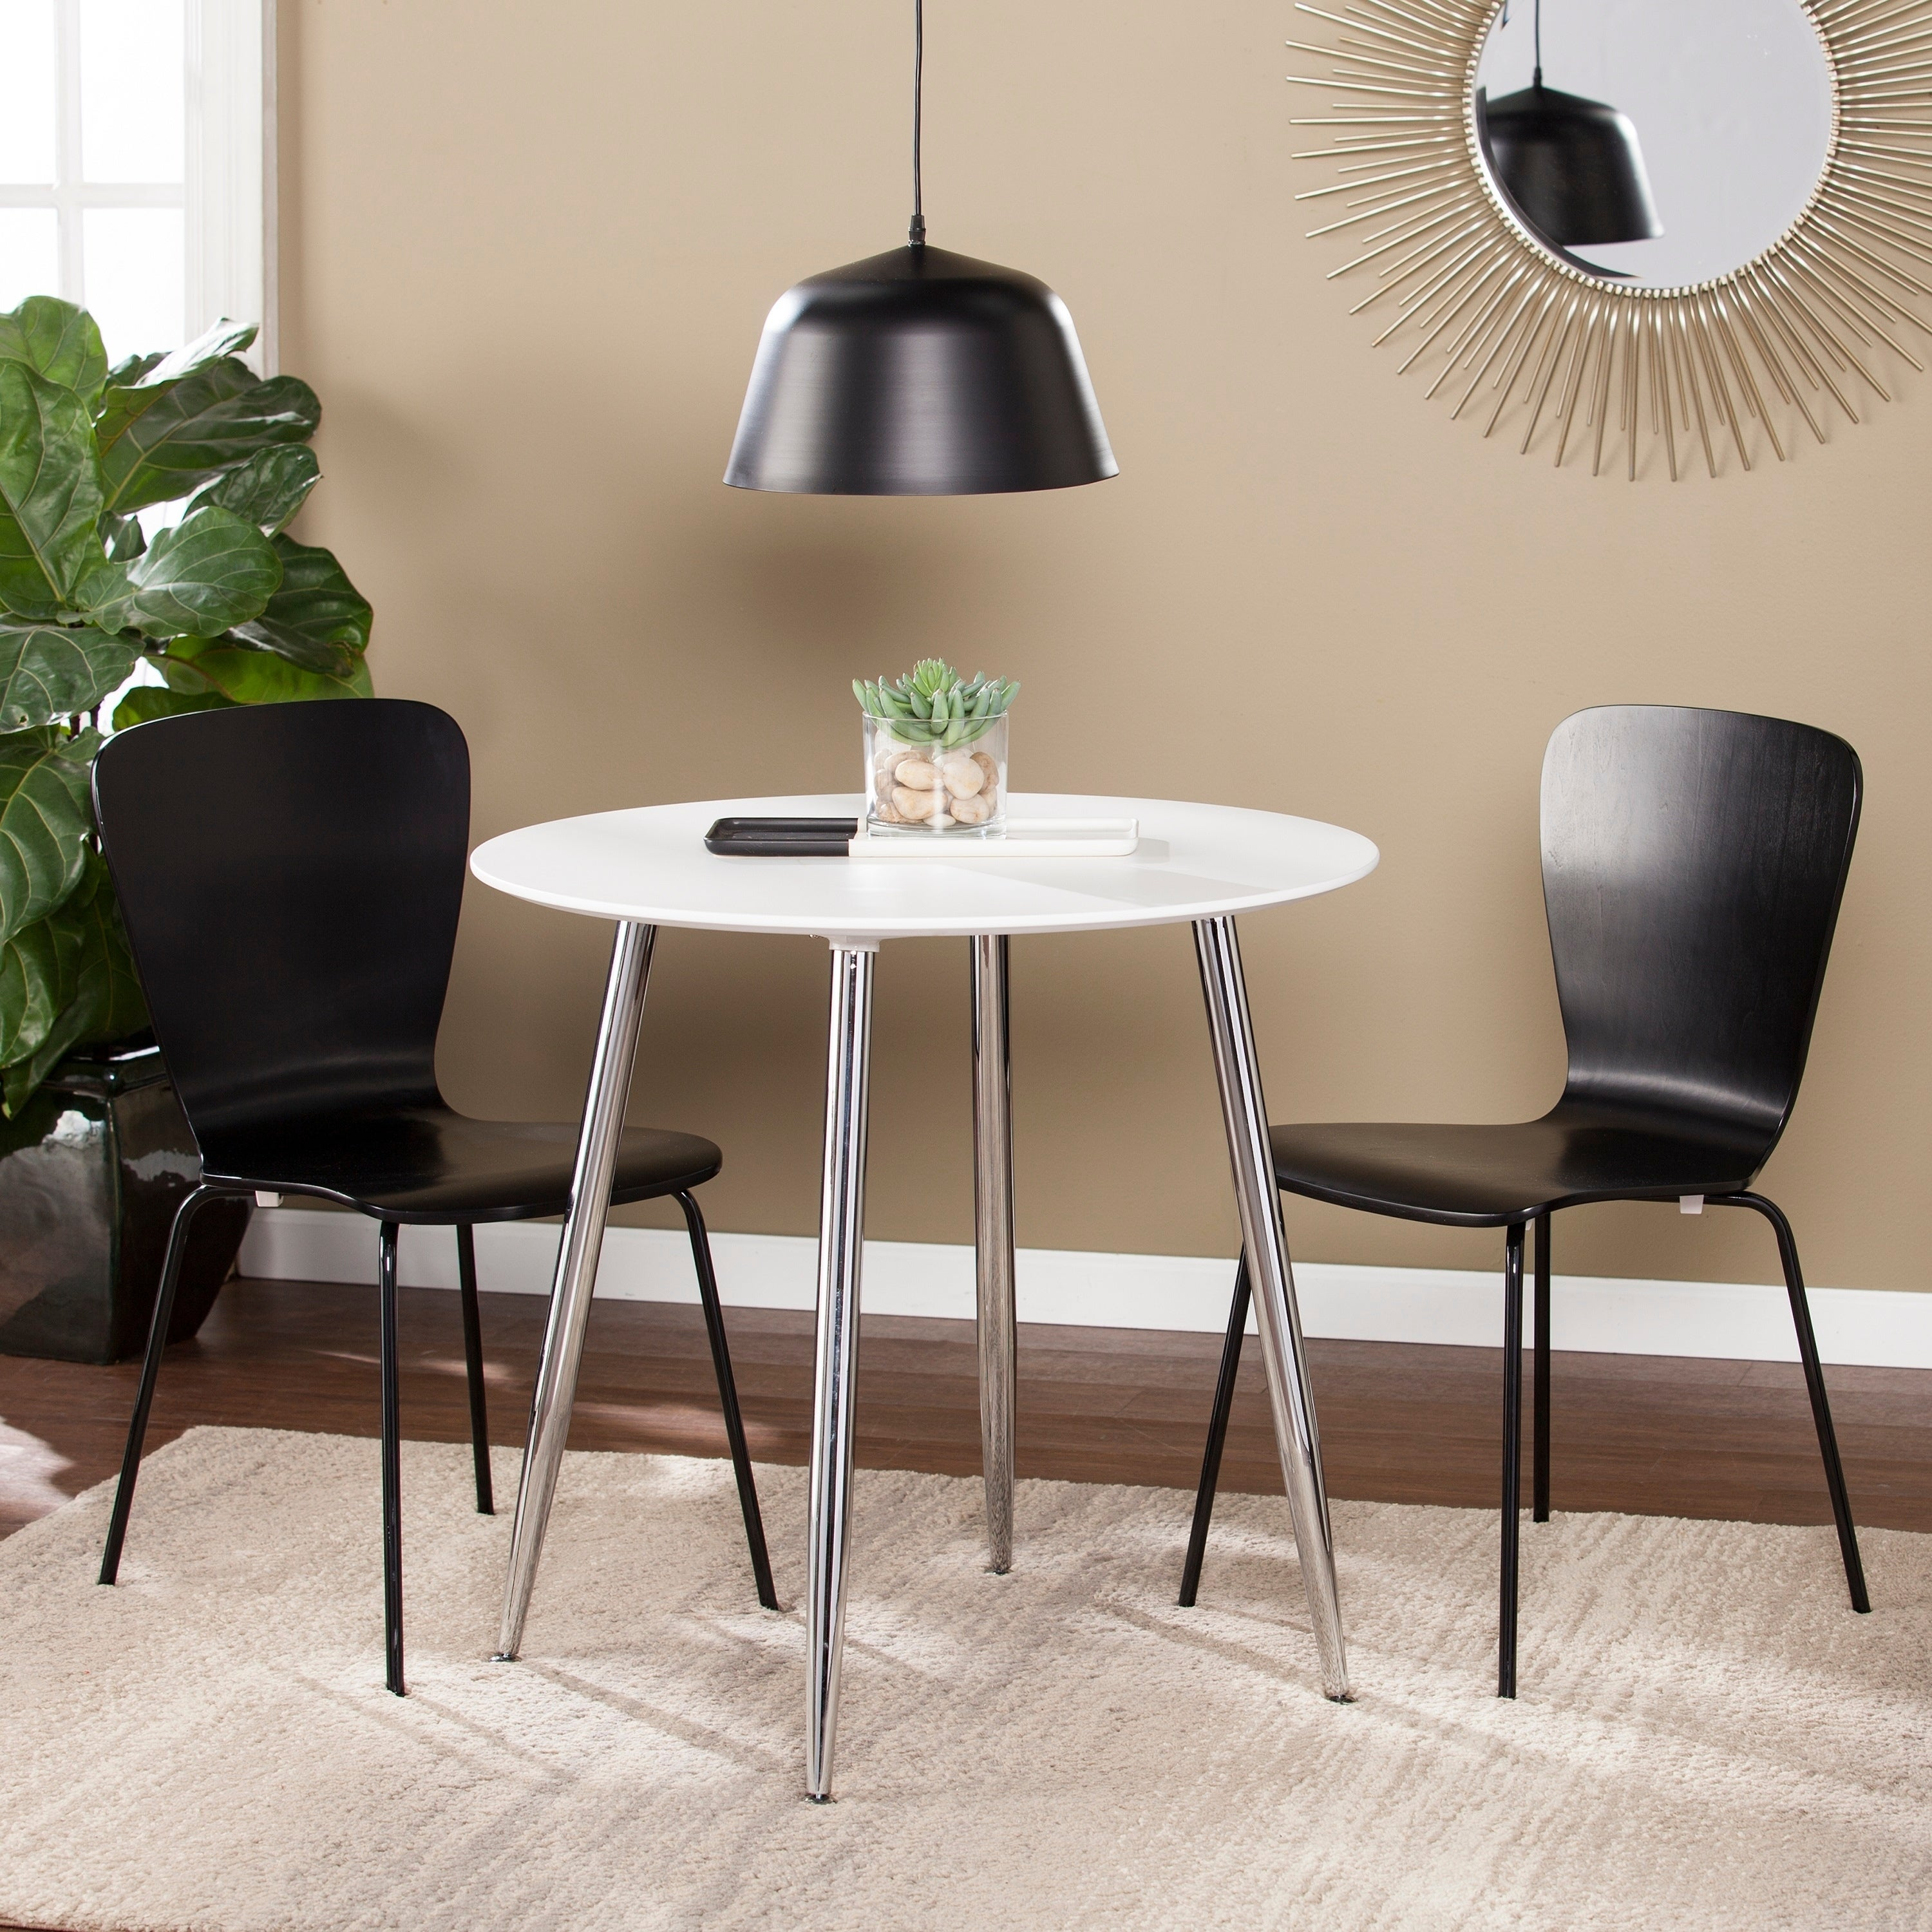 Merveilleux Harper Blvd Maydelle Multifunctional Round Dining/Game Table   White   Free  Shipping Today   Overstock   24218817